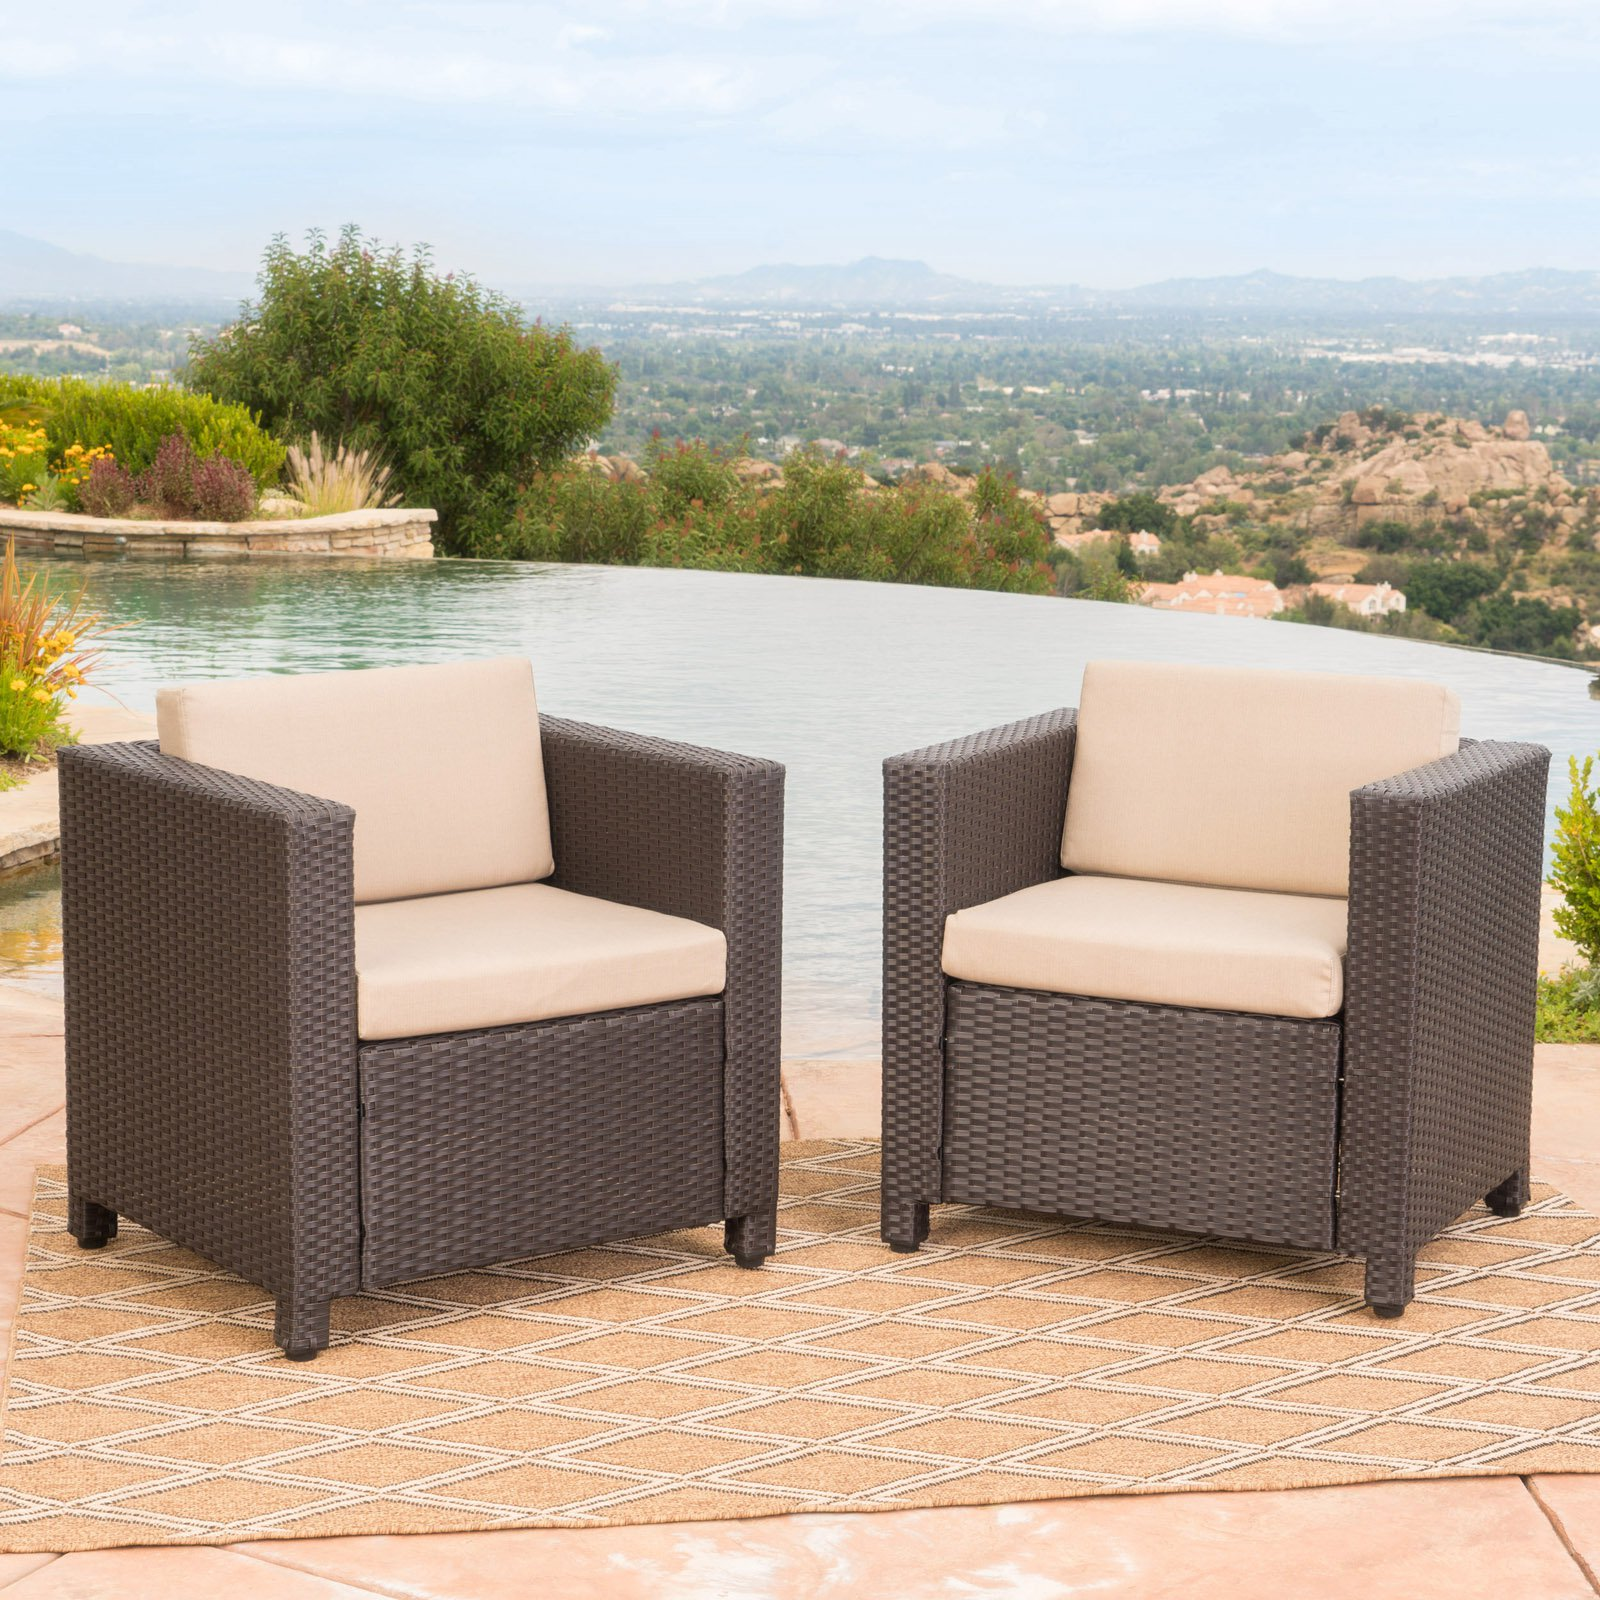 Puerta Outdoor Wicker Club Chair